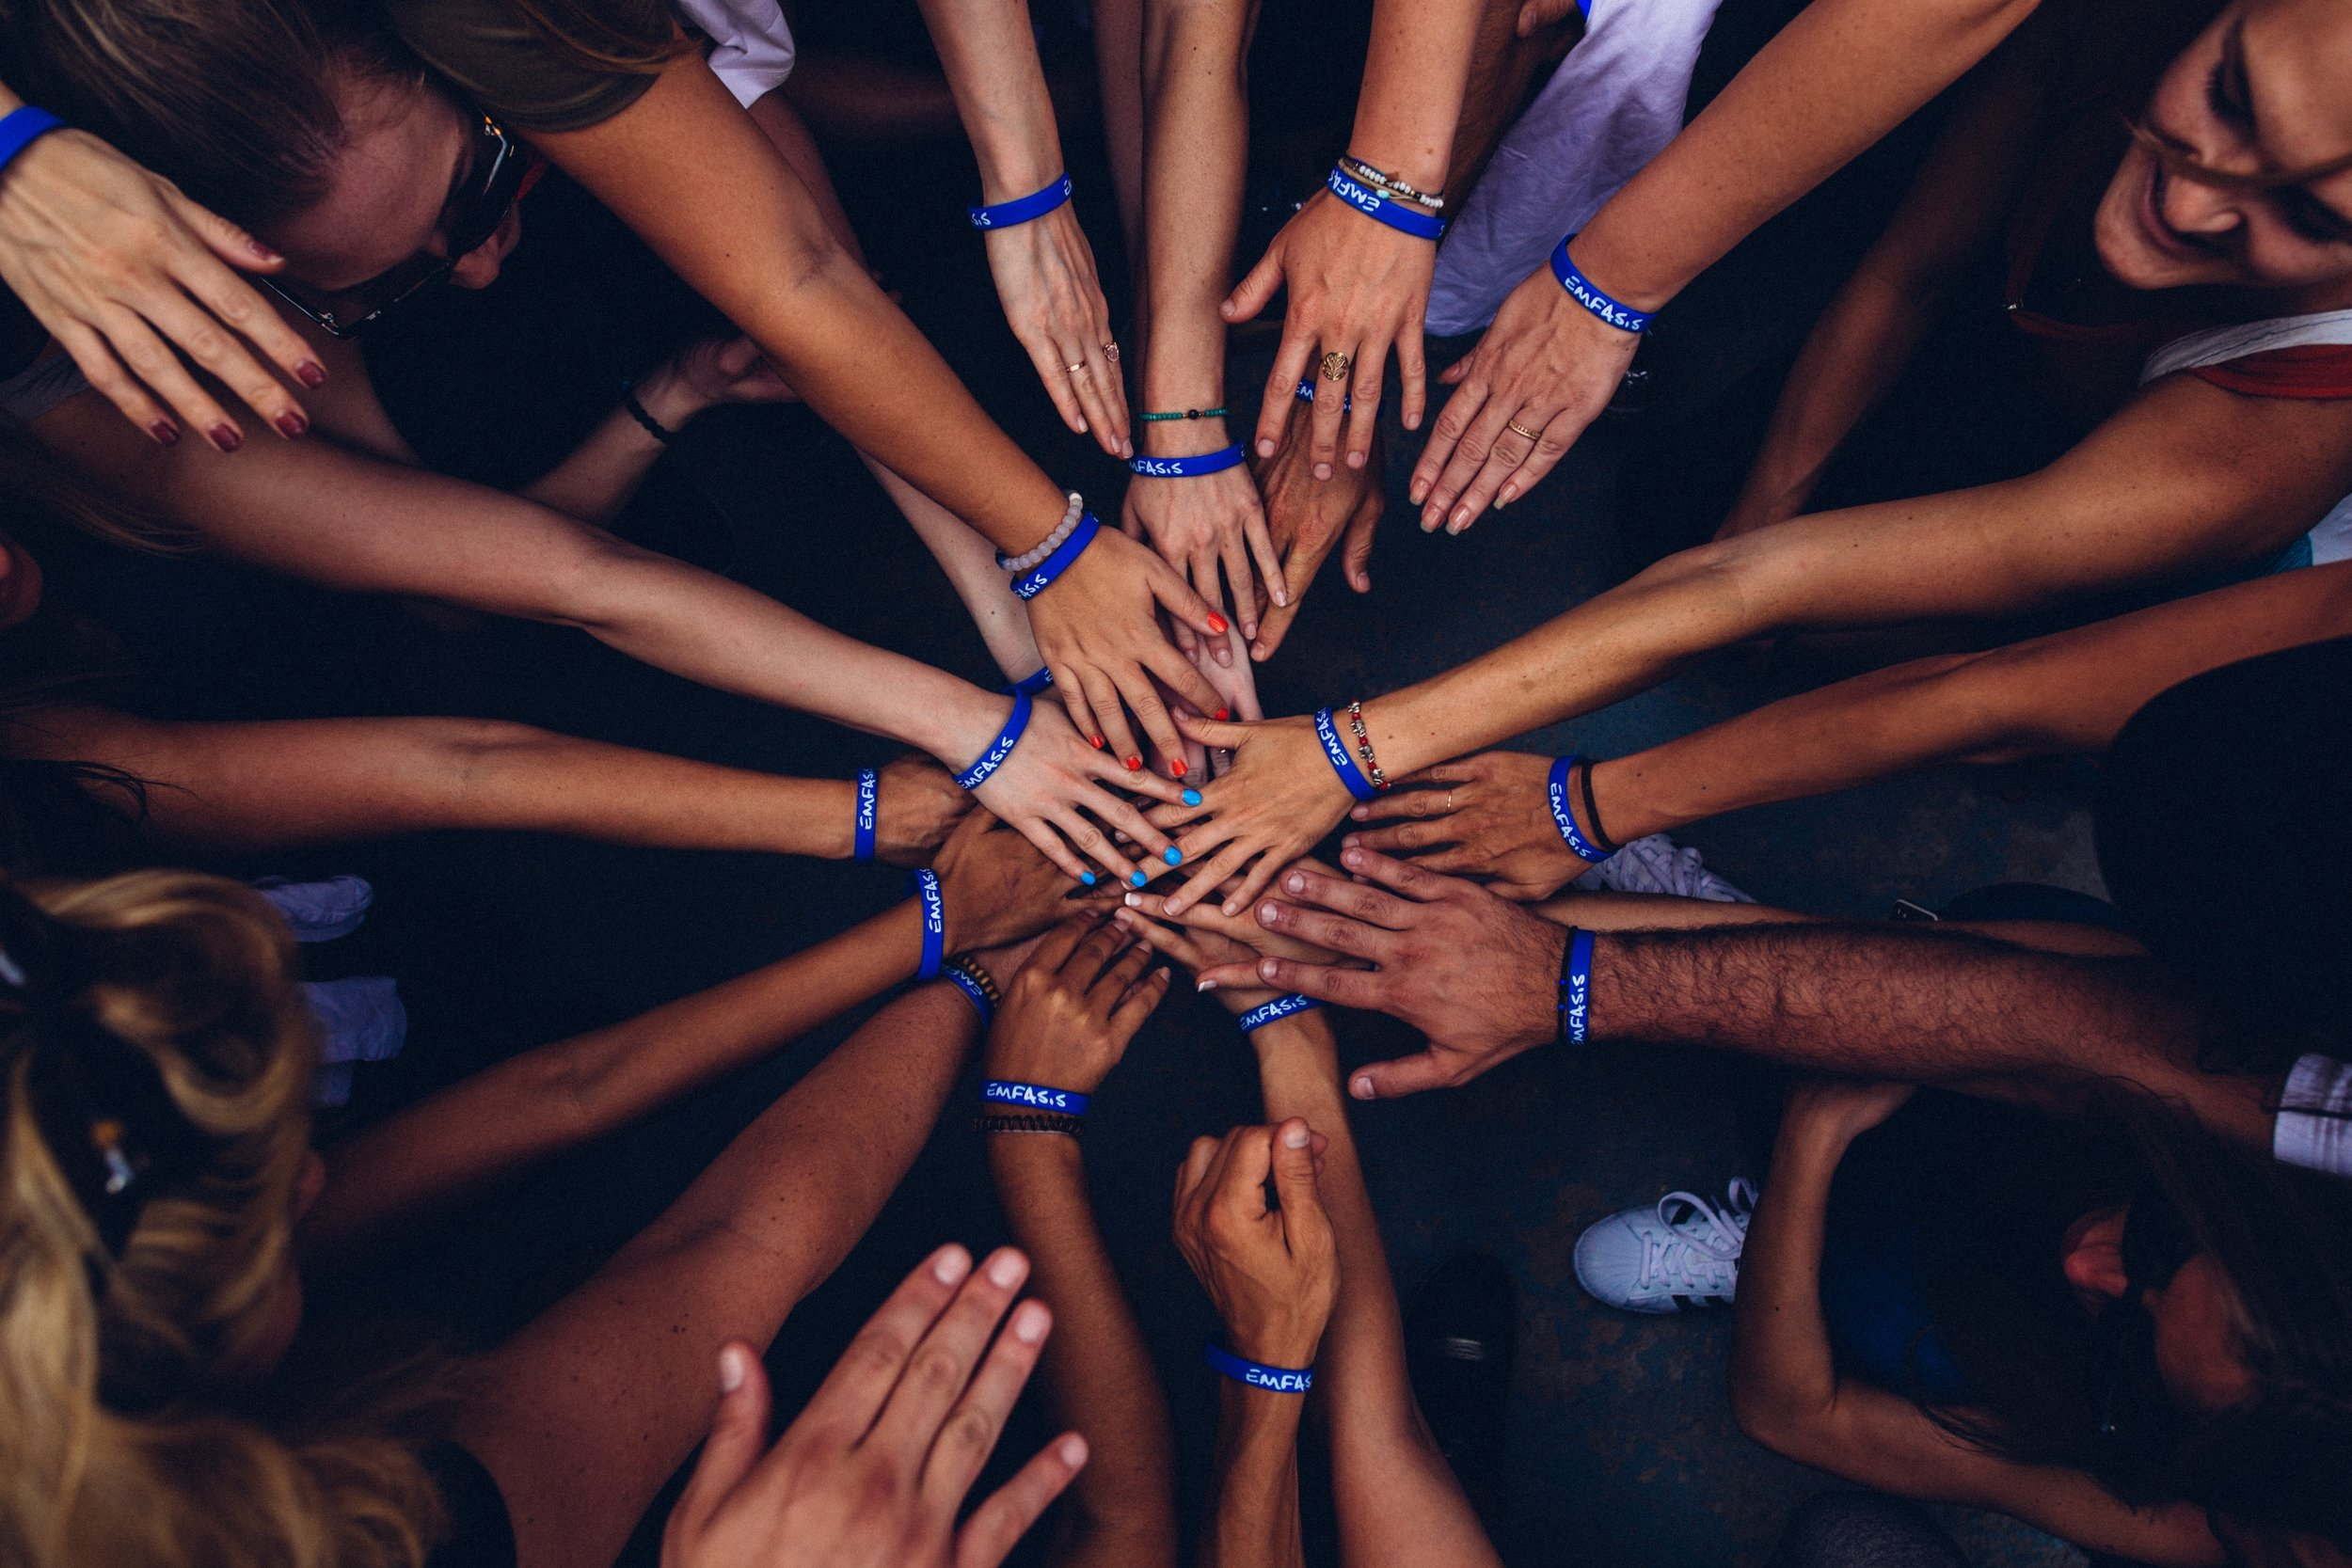 [Image Description: Several people put their hands together in the middle of a circle. The image looks down from above.]